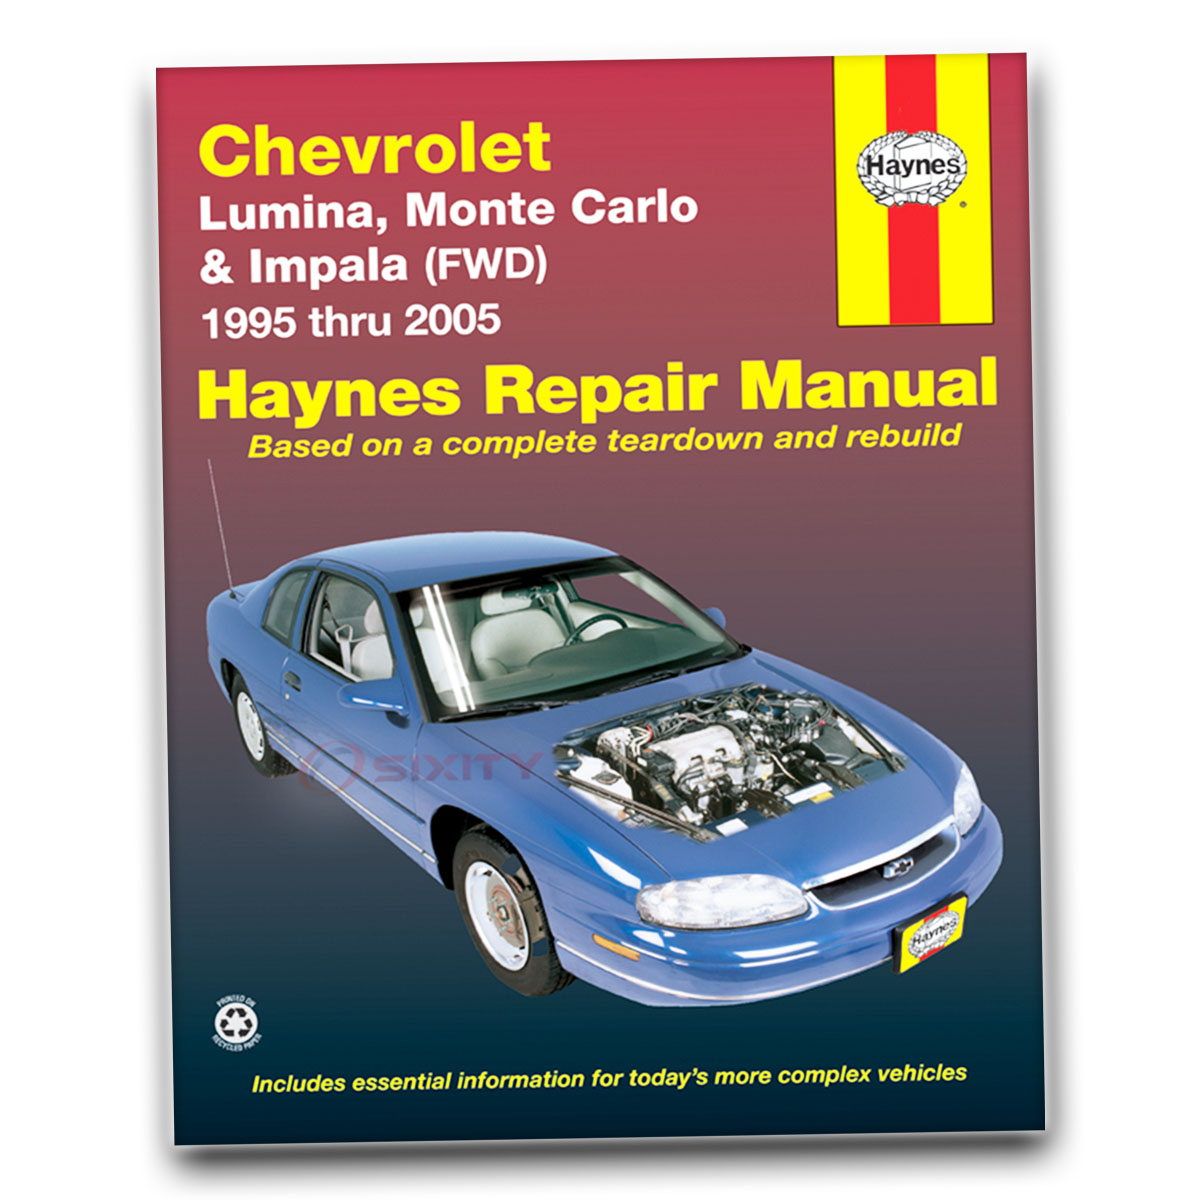 chevy lumina haynes repair manual ls base ltz shop service garage rh ebay com 2006 Chevy Impala Interior 2008 Chevy Lumina